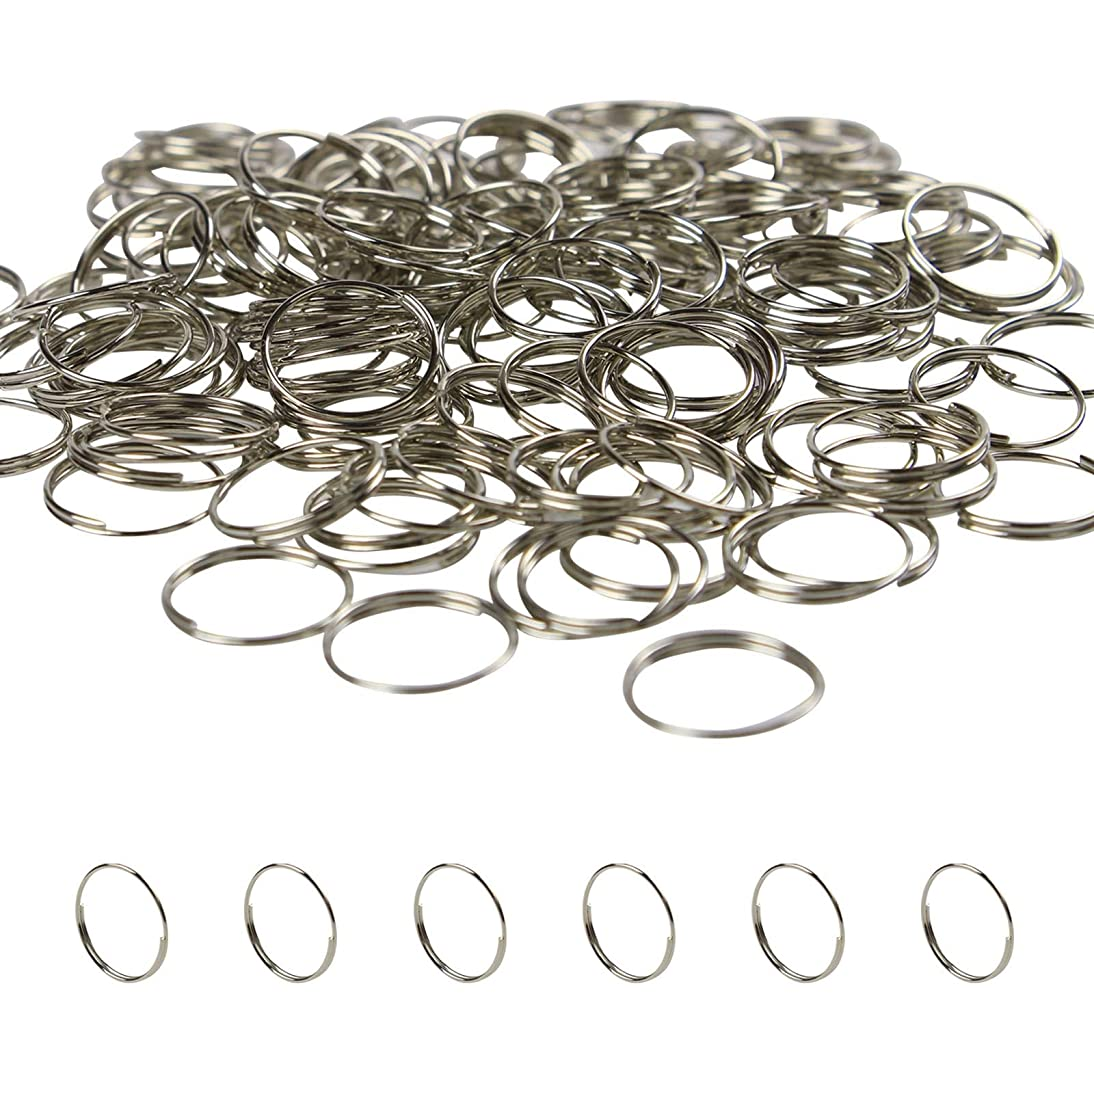 BIHRTC 150Pcs Metal Split Rings, Crystal Chandeliers Connectors Part for Chandelier, Curtain,Suncatchers, Crystal Garland,Necklaces, Earrings, Other Jewelry Making and Craft Ideas(Chrome,16mm)